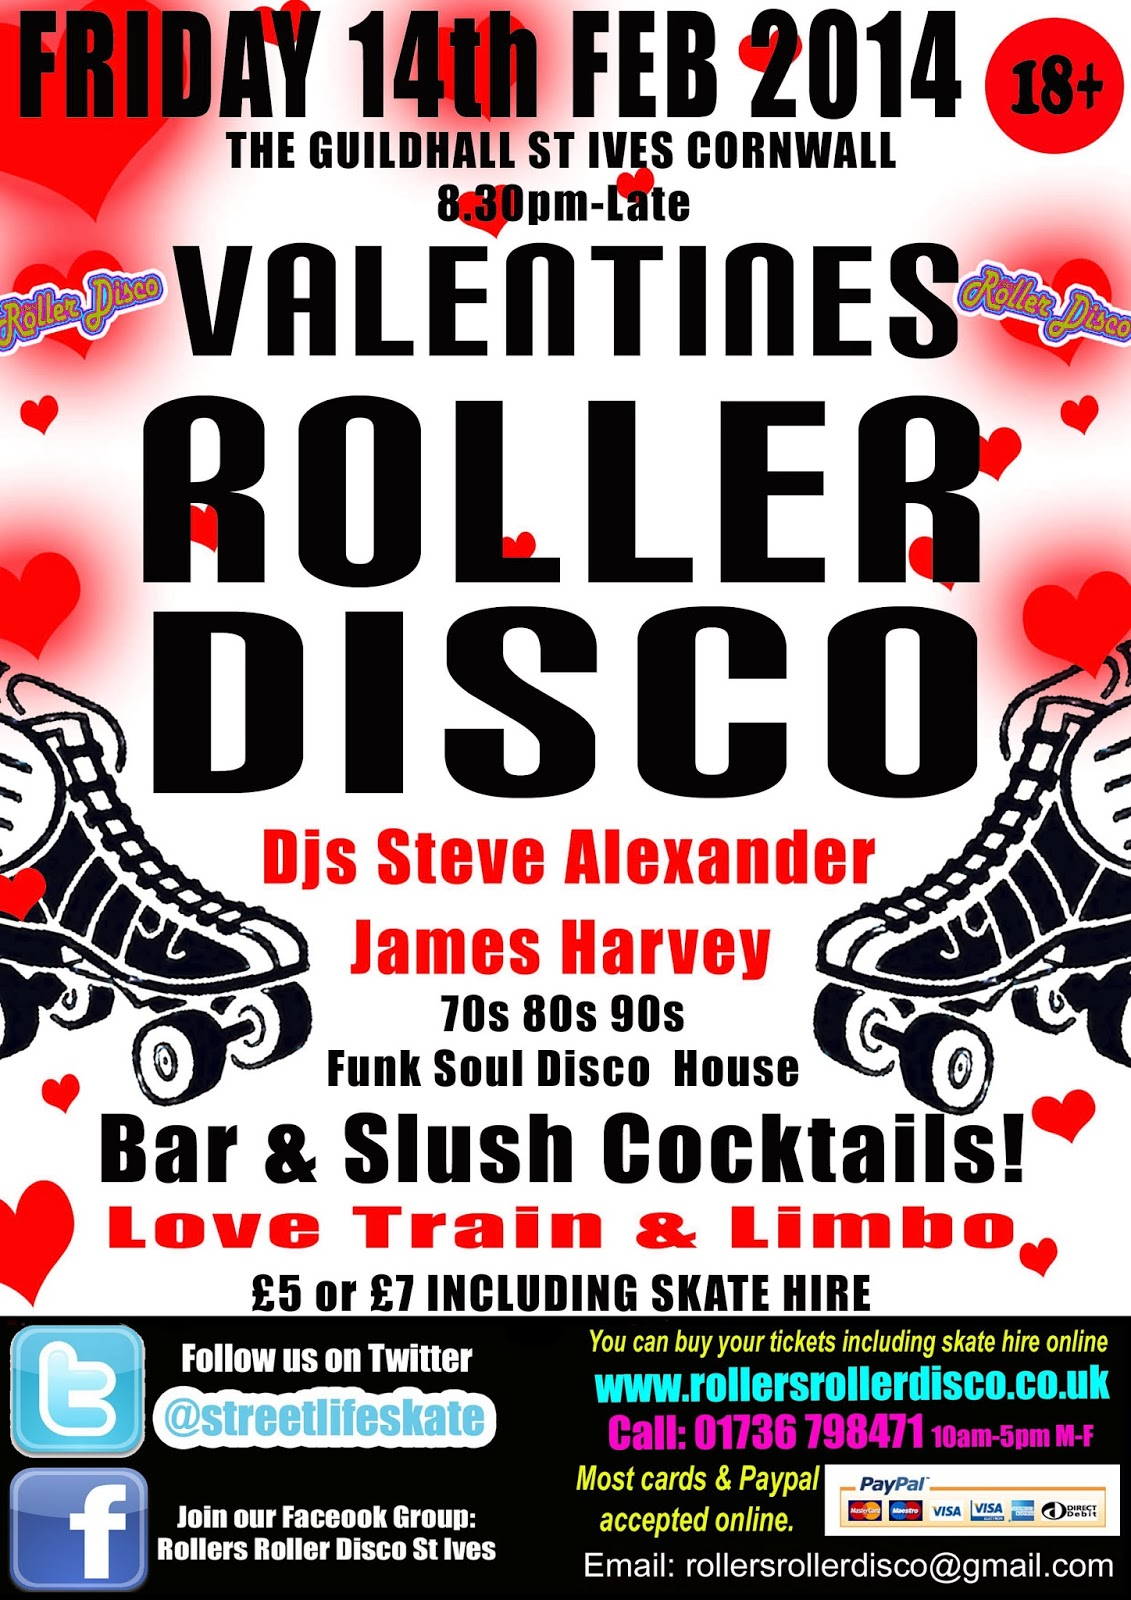 http://www.rollersrollerdisco.co.uk/